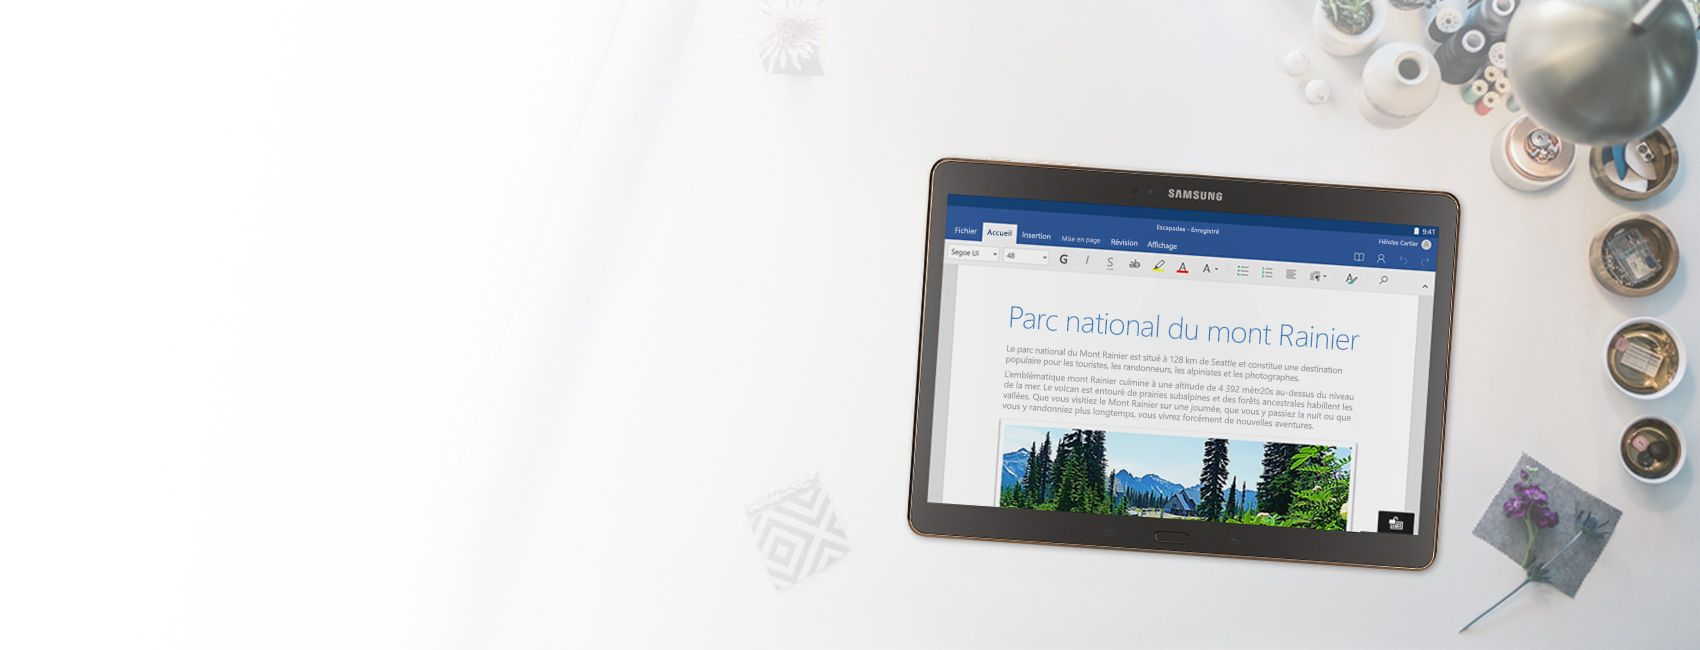 Tablette affichant un document Word sur le Parc national du mont Rainier